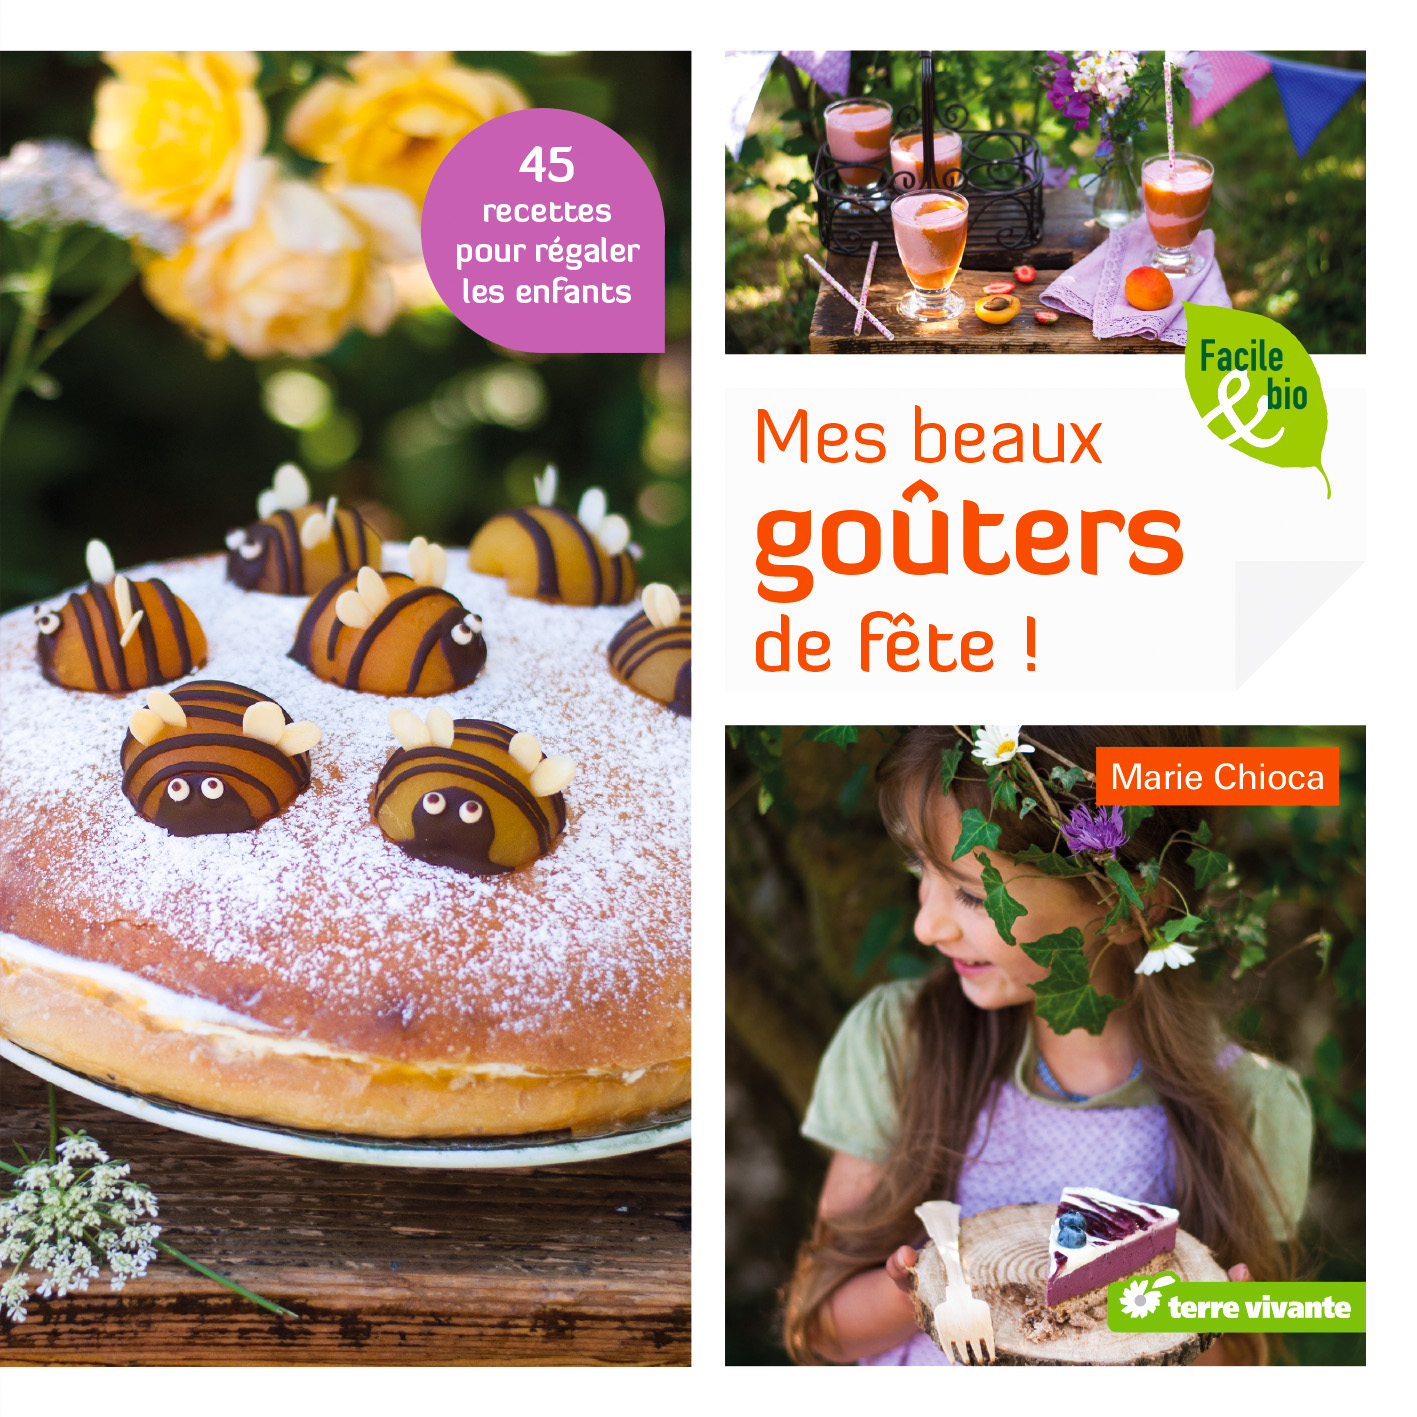 https://i0.wp.com/www.saines-gourmandises.fr/wp-content/uploads/2017/05/Couv-GoutersFete-HD-2.jpg